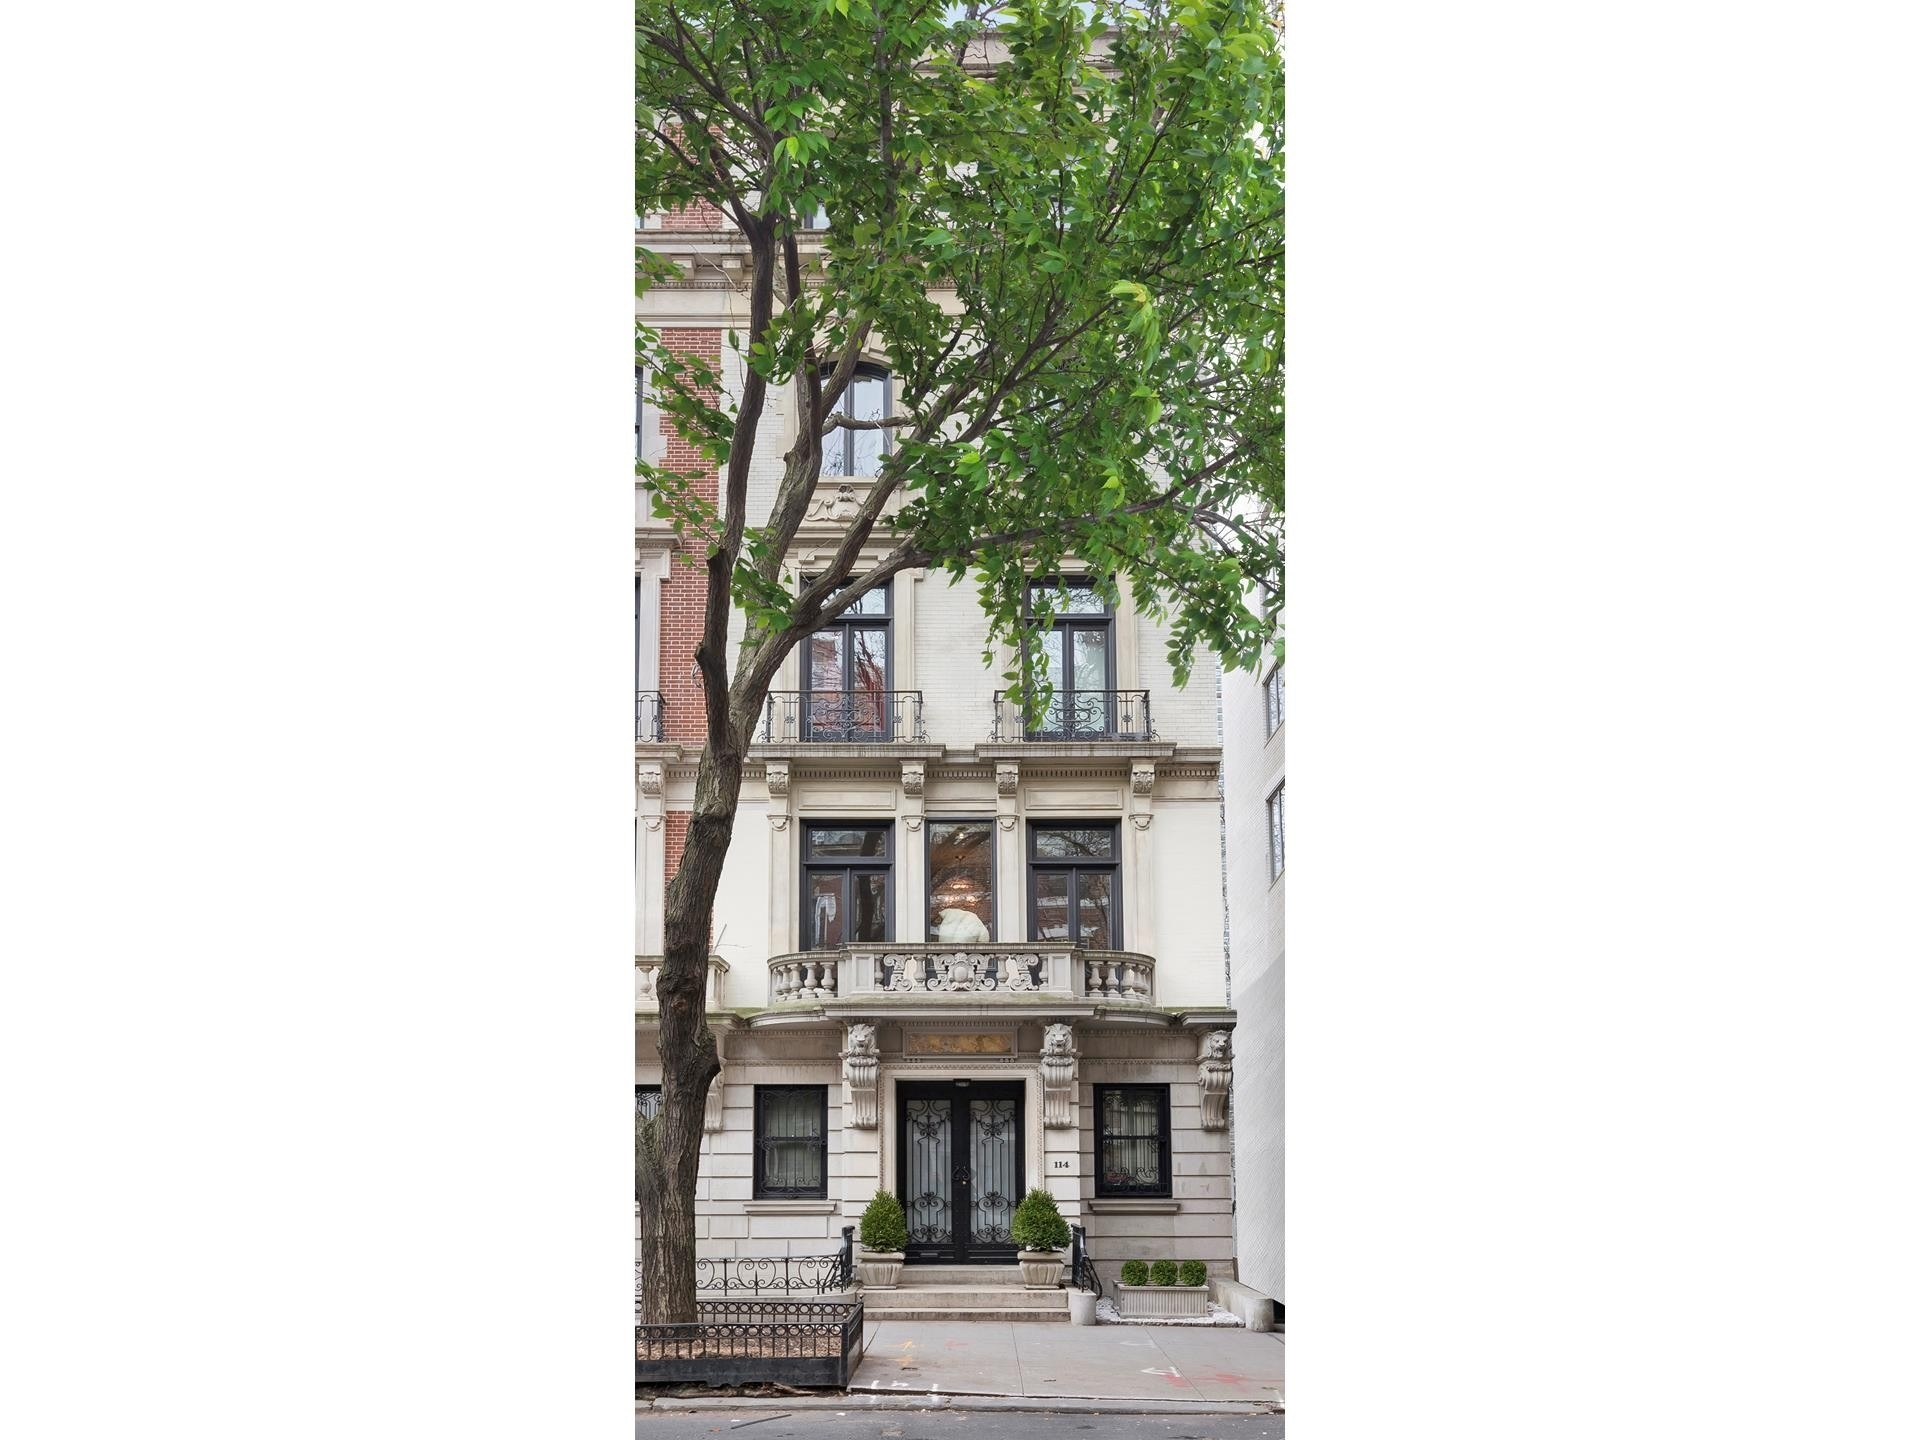 21. Single Family Townhouse for Sale at Lenox Hill, New York, NY 10021